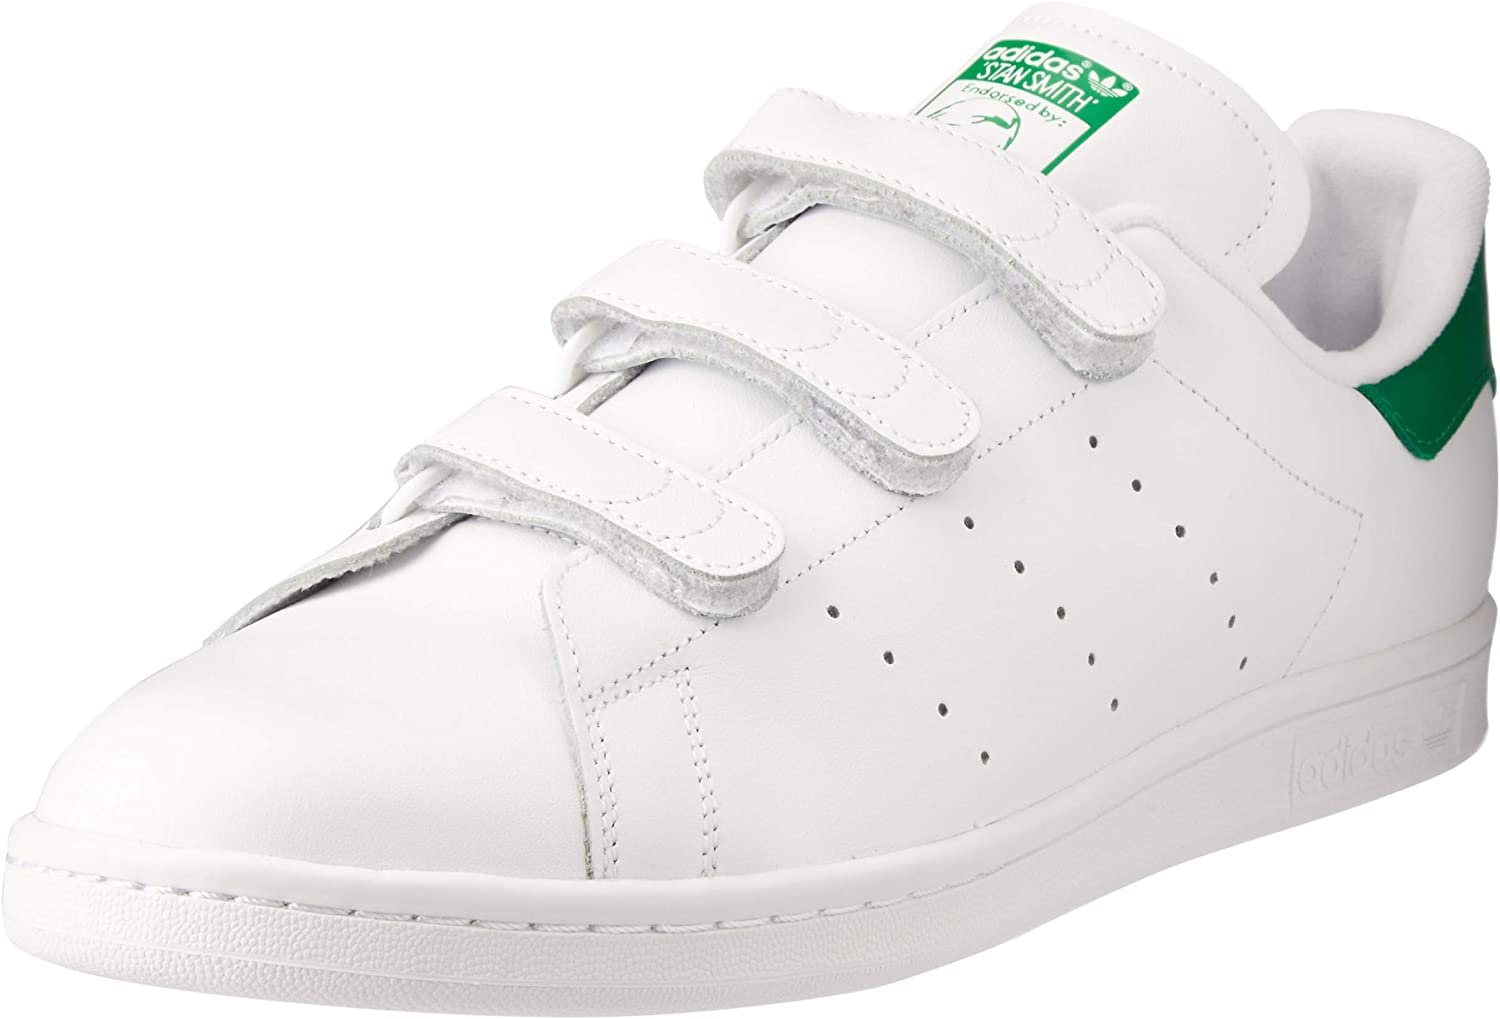 in stock 7ed4c f2ee2 Stan Smith Cf Trainers Adidas Men's nvckgb3091-New Shoes ...